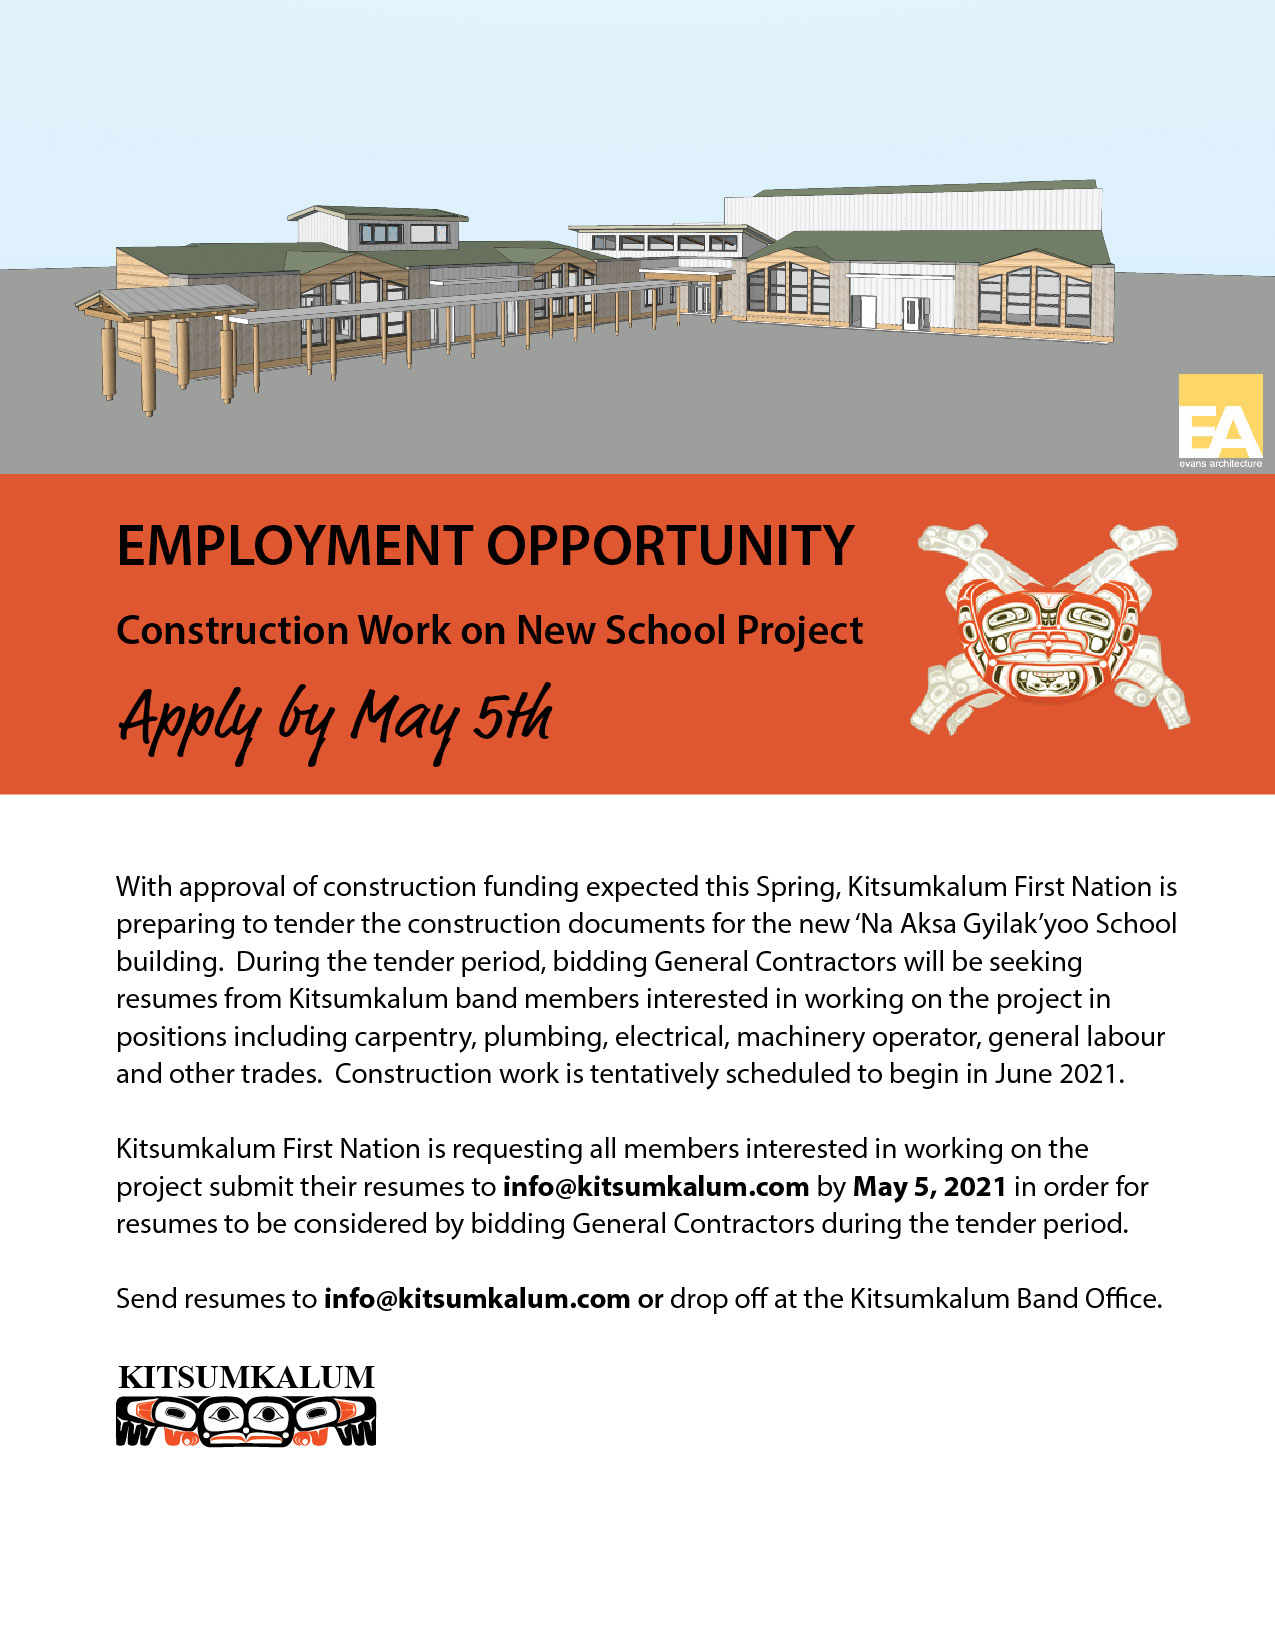 New School Project – Employment Opportunity